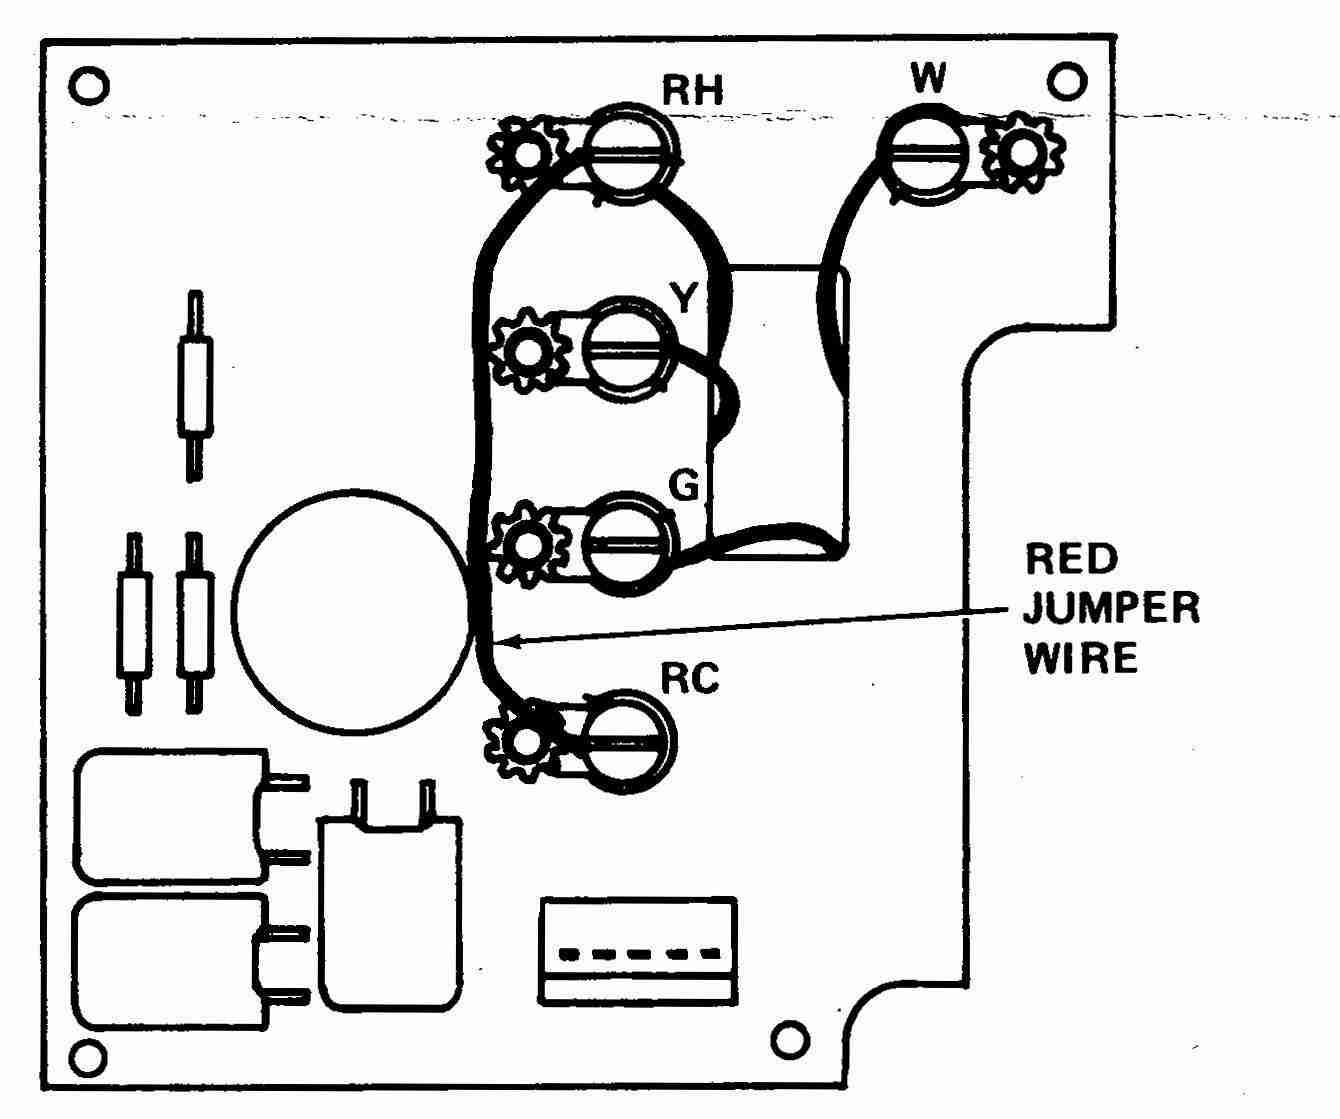 How wire a white rodgers room thermostat white rodgers thermostat white rodgers 4 wire 1f90 thermostat wiring diagram swarovskicordoba Choice Image